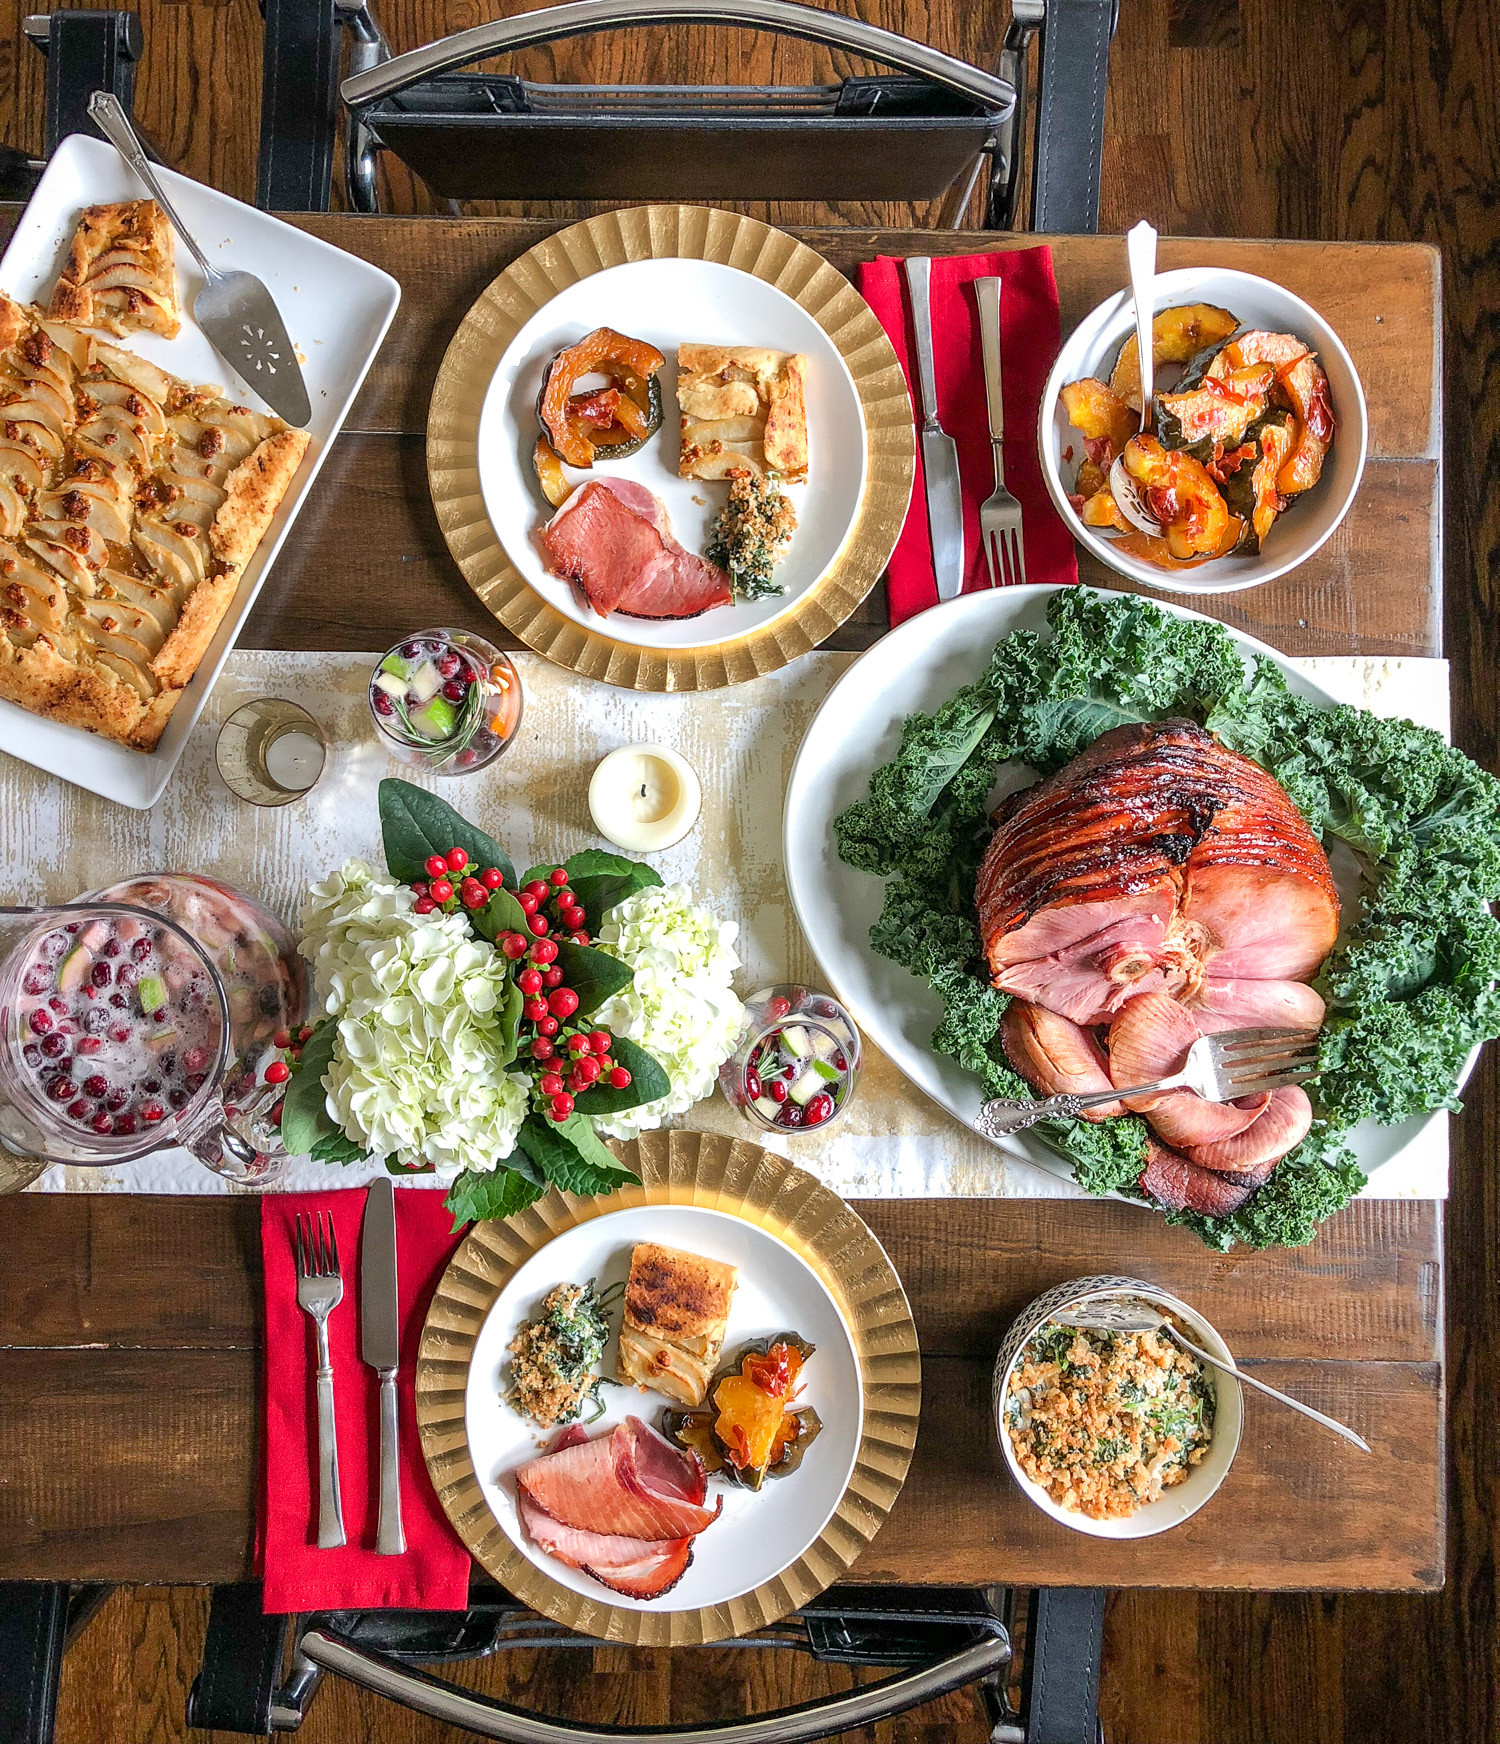 Stop And Shop Christmas Dinners  Christmas Dinner Menu Ideas Plan a Memorable Meal for